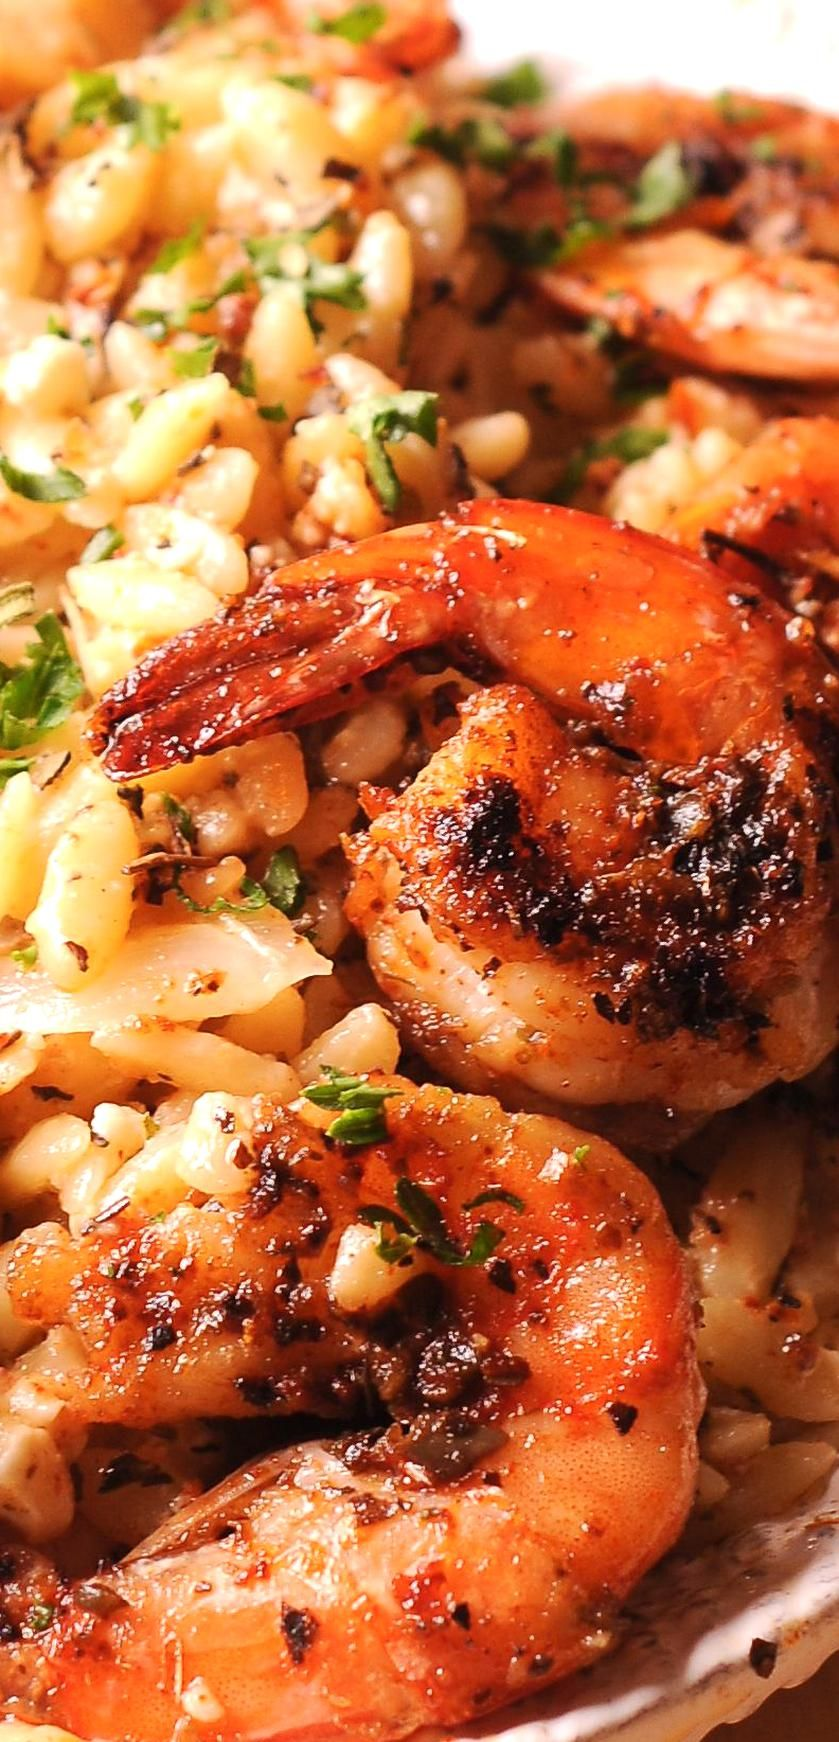 Shrimp Orzo In Creamy Wine Sauce Is One Easy Shrimp Orzo Pasta Dish Thats Ready In 30 Minutes Shrimp Orzo Pasta Wine W In 2020 Shrimp Orzo Orzo Pasta Easy Shrimp